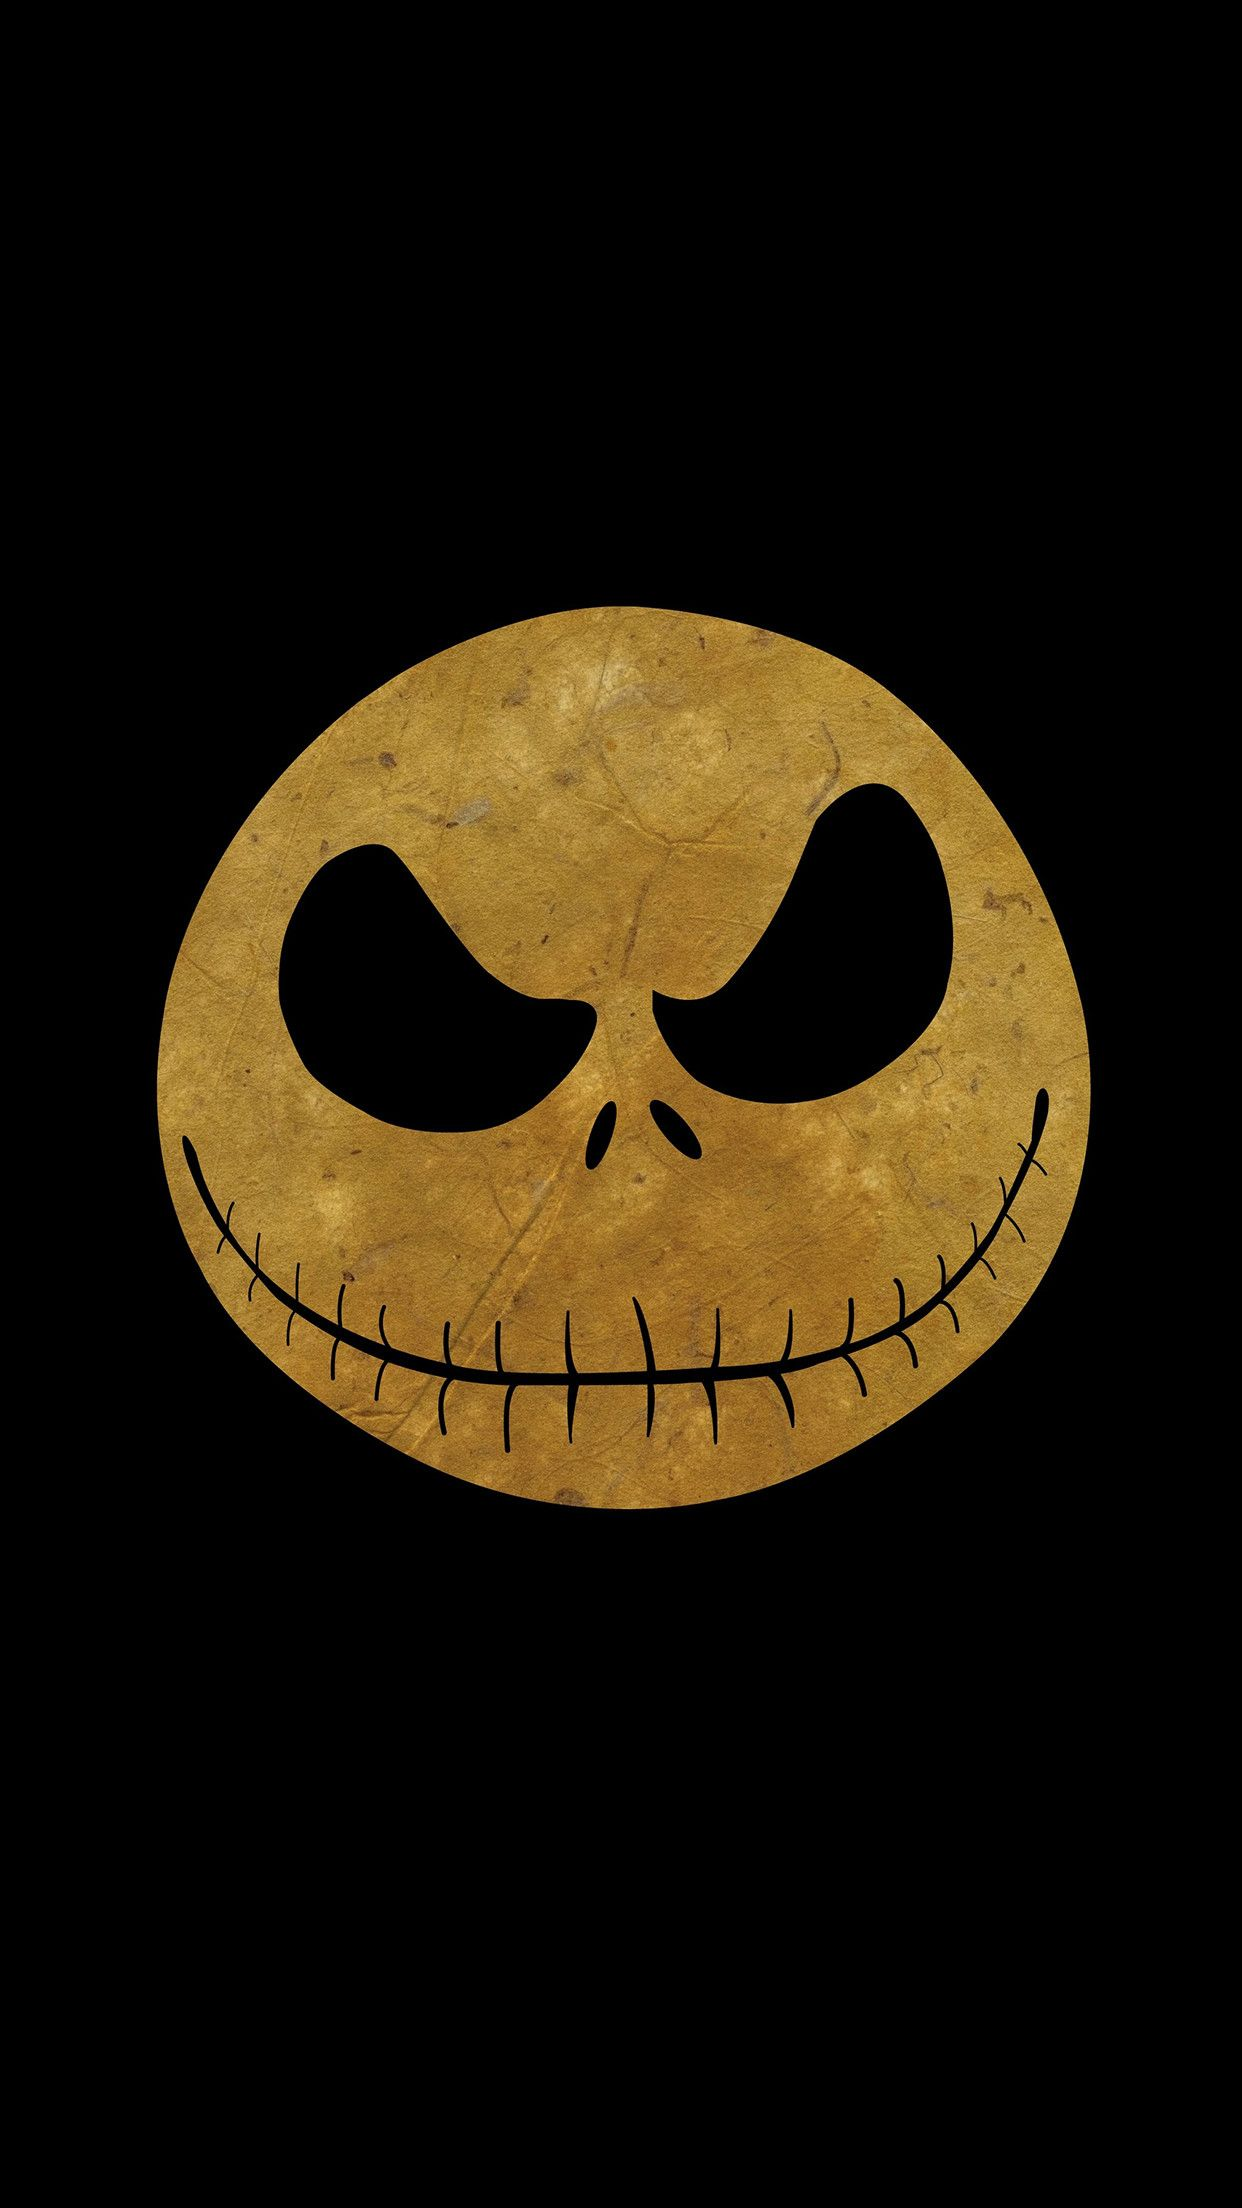 Nightmare Before Christmas Aesthetic Wallpaper.Nightmare Iphone Wallpapers Top Free Nightmare Iphone